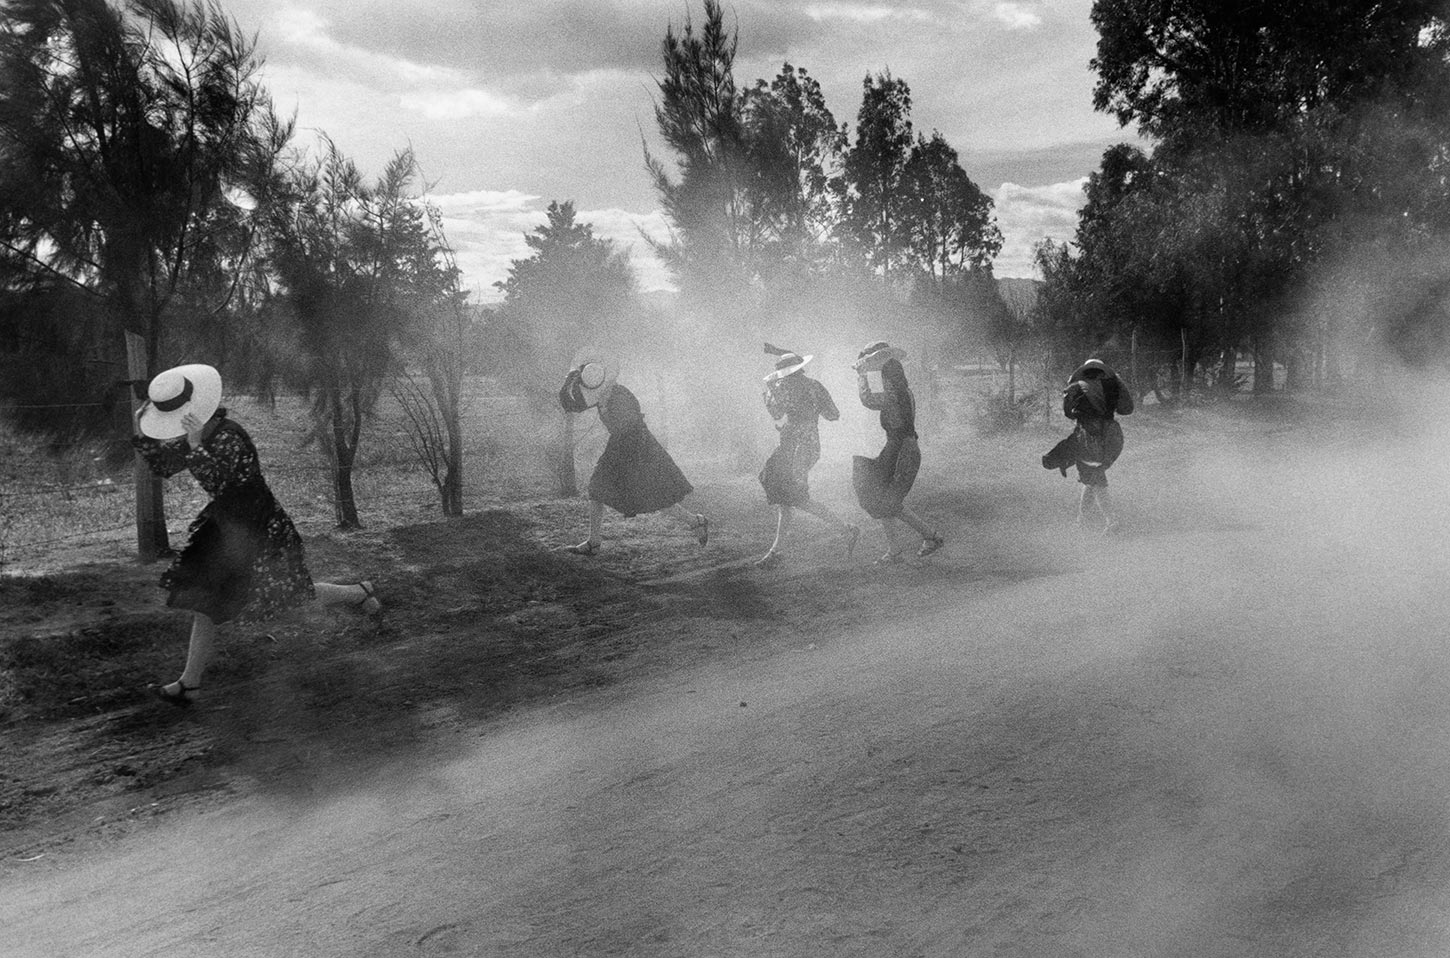 Young Mennonite women fleeing a cloud of dust. Durango, Mexico. 1994.